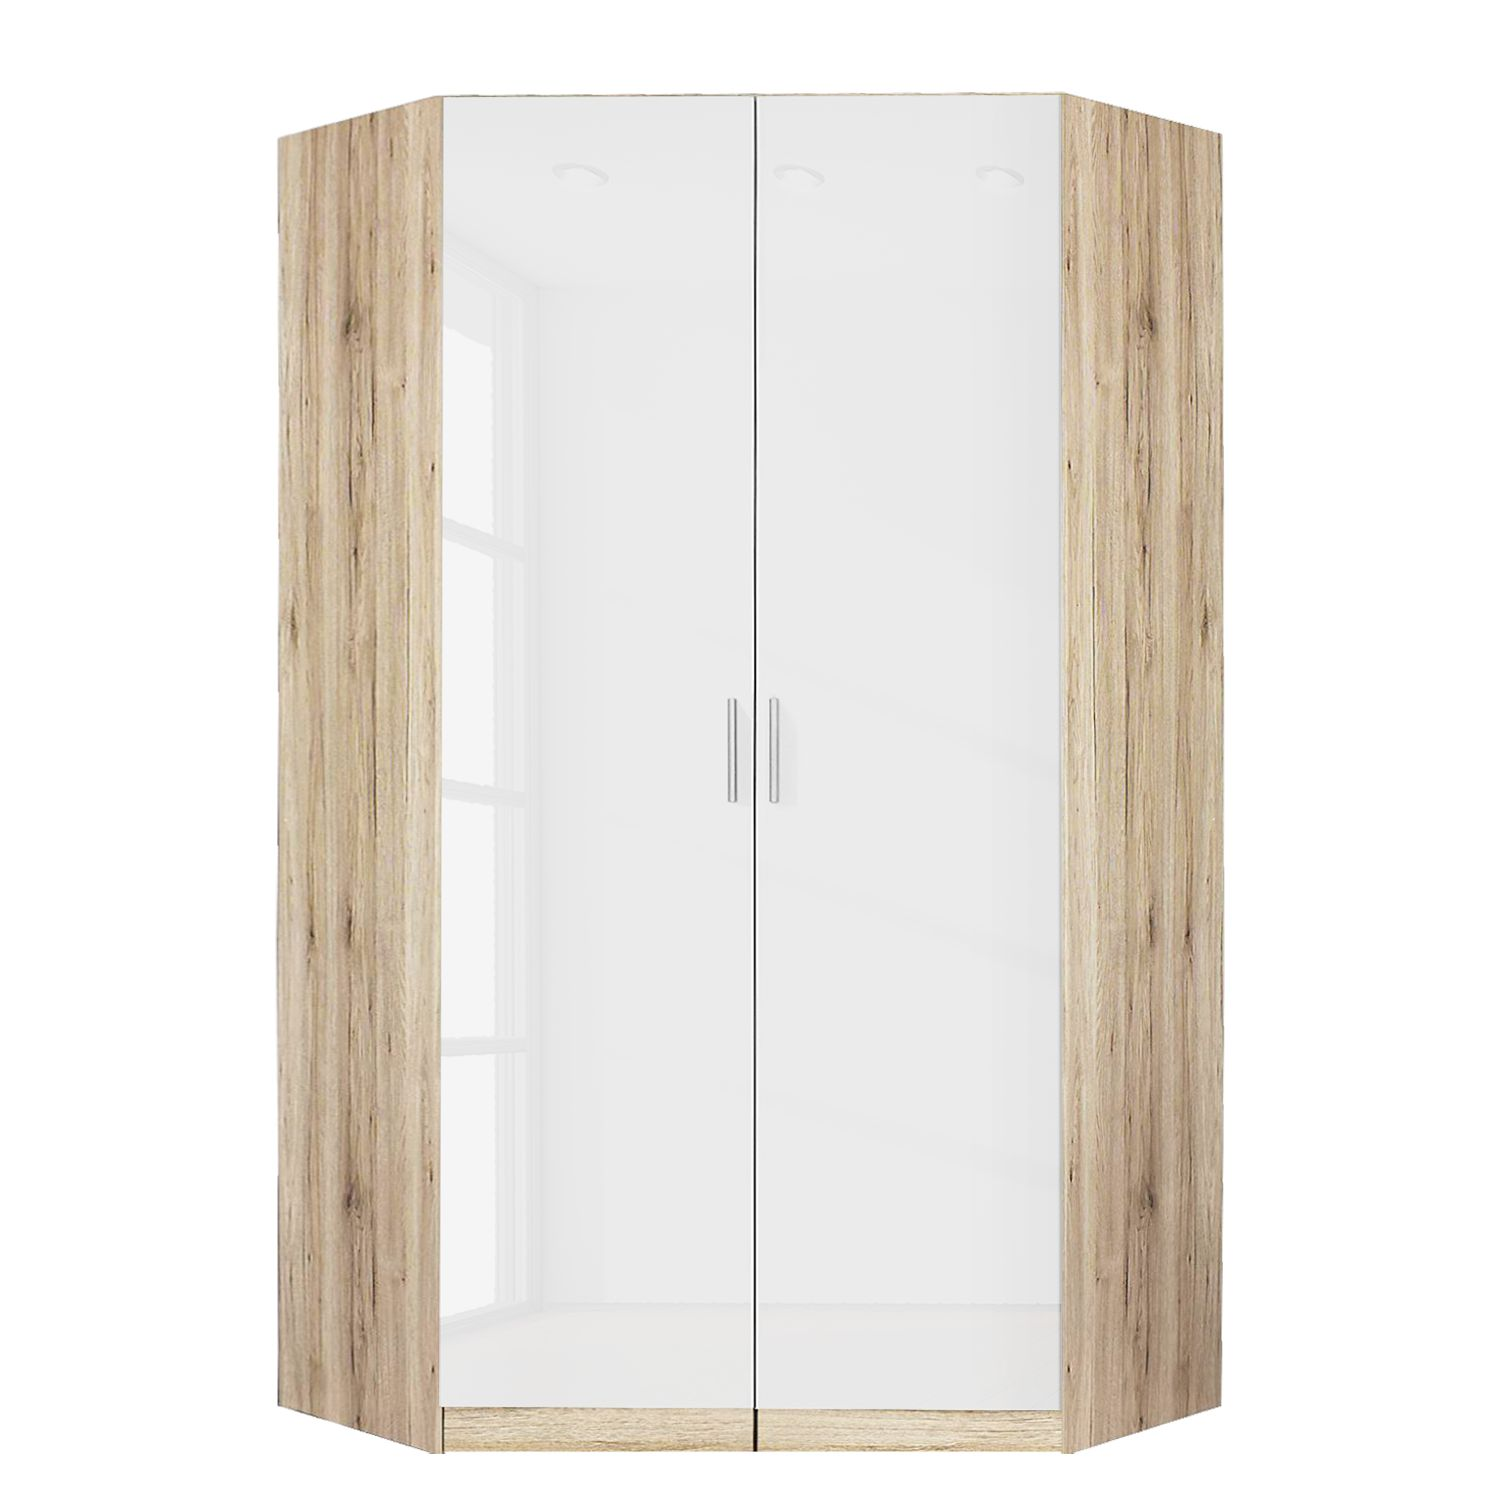 Armoire d'angle Celle - Imitation chêne de Sonoma / Blanc brillant, Rauch Packs